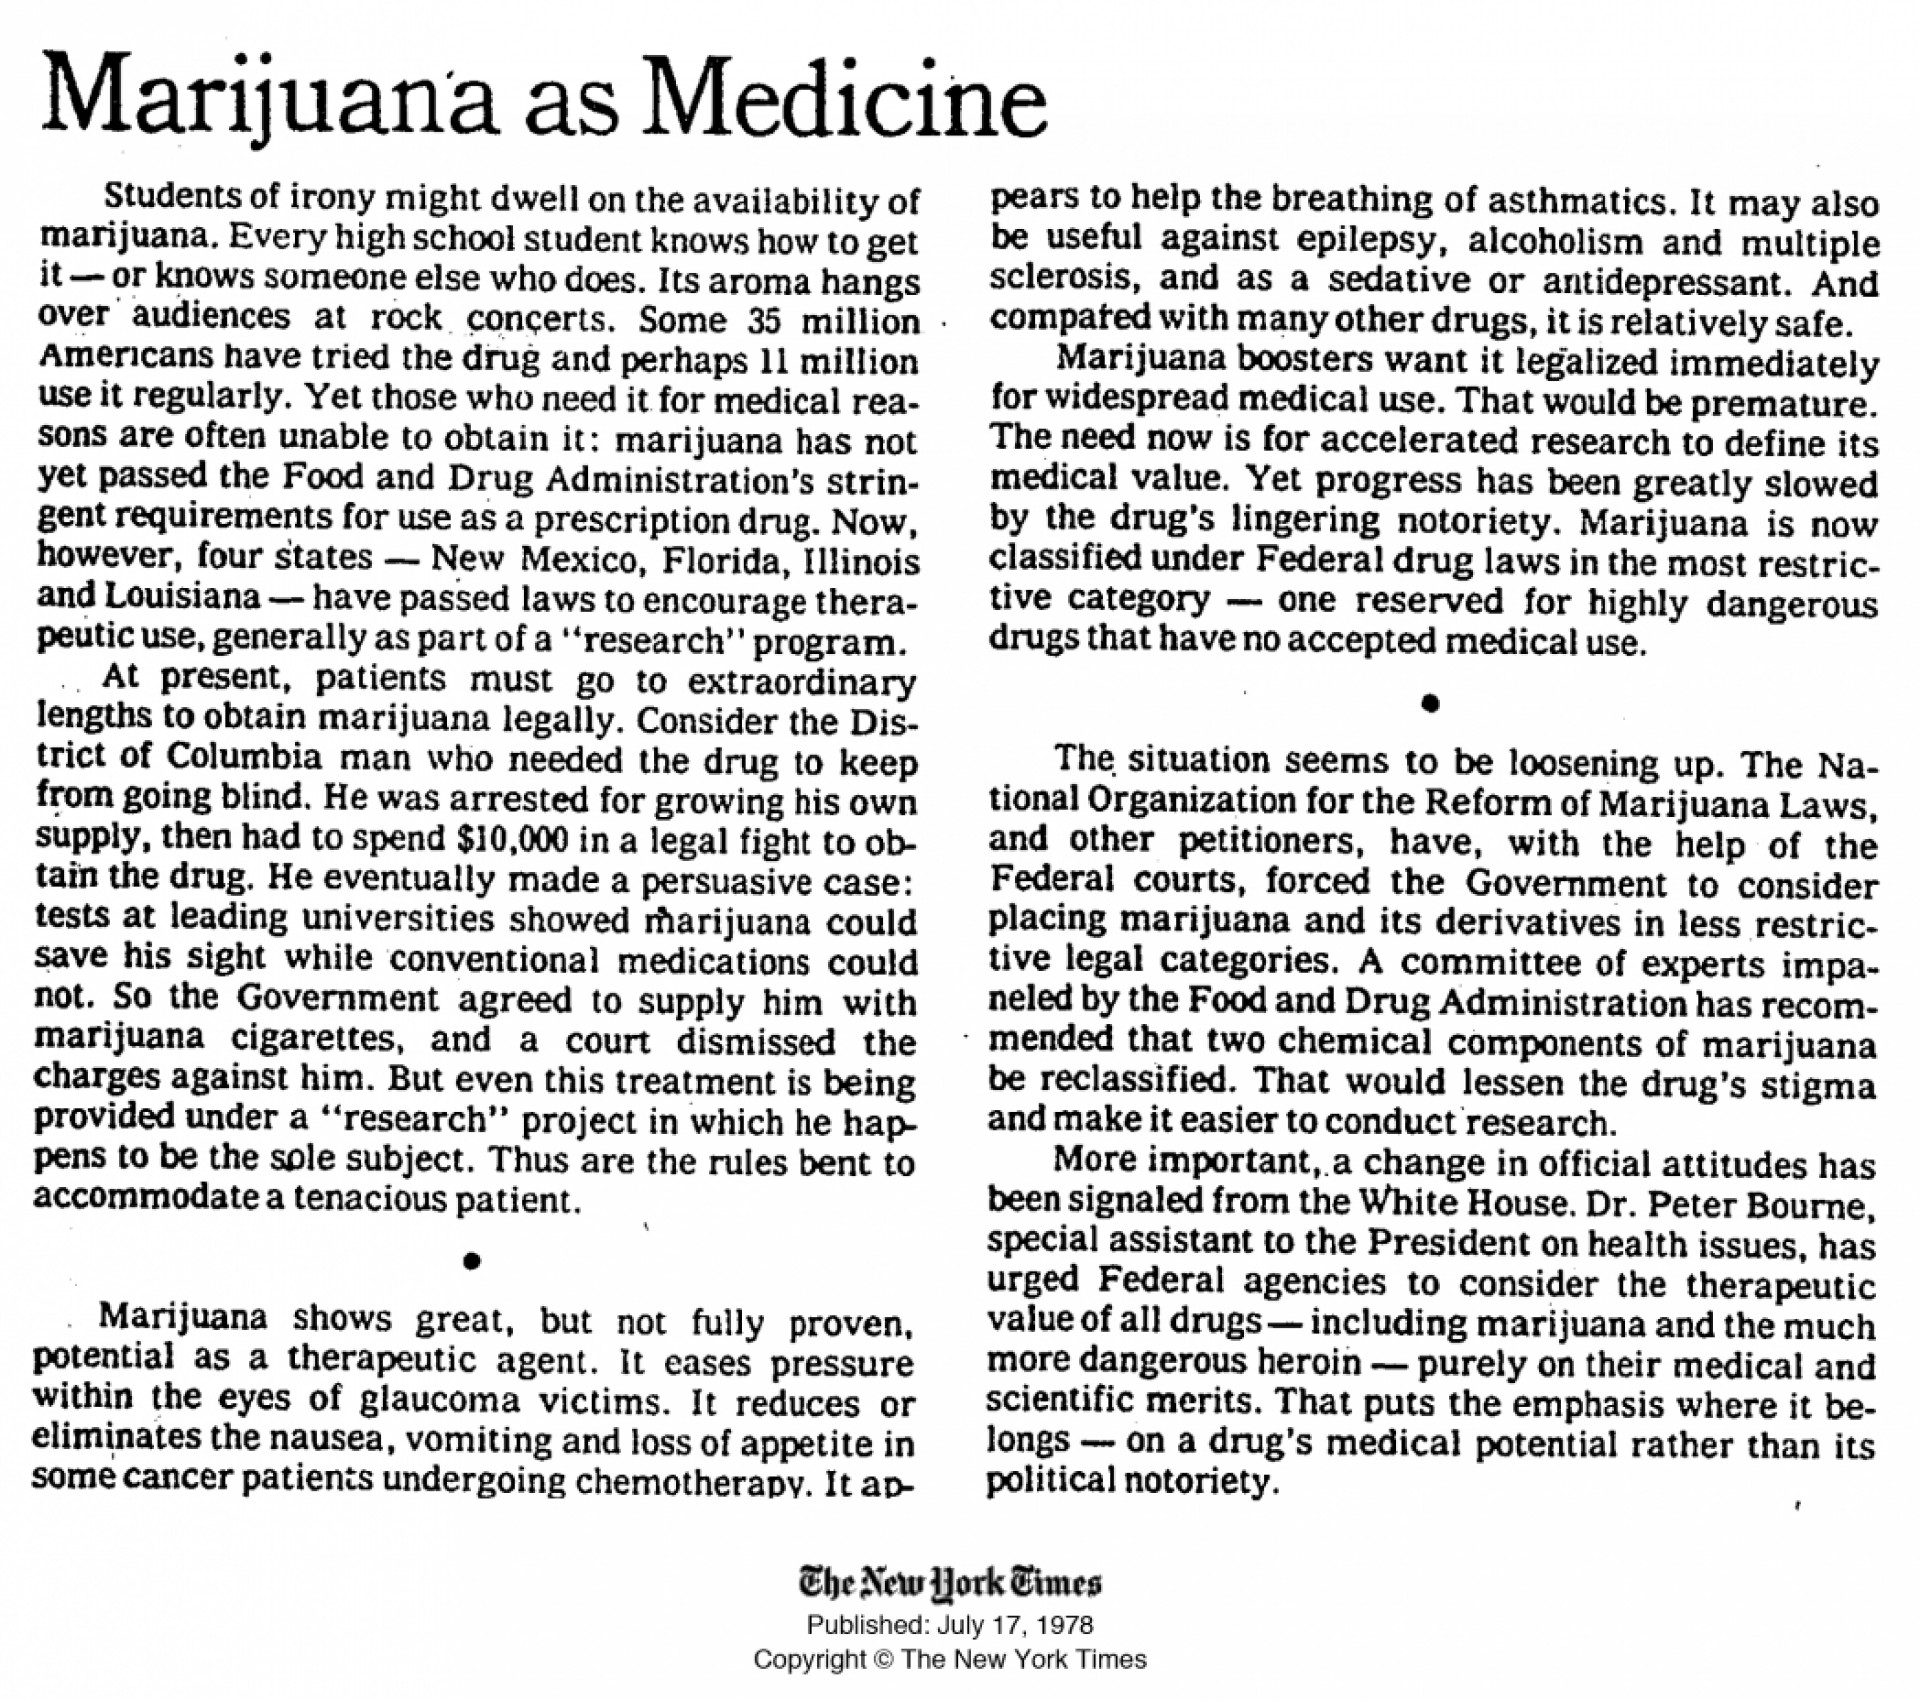 001 New York Essays Marijuana Legalization Persuasive Essay Legalize High Time Medicine July College Yorker Help Times 1048x928 Breathtaking Topics Titles Outline 1920